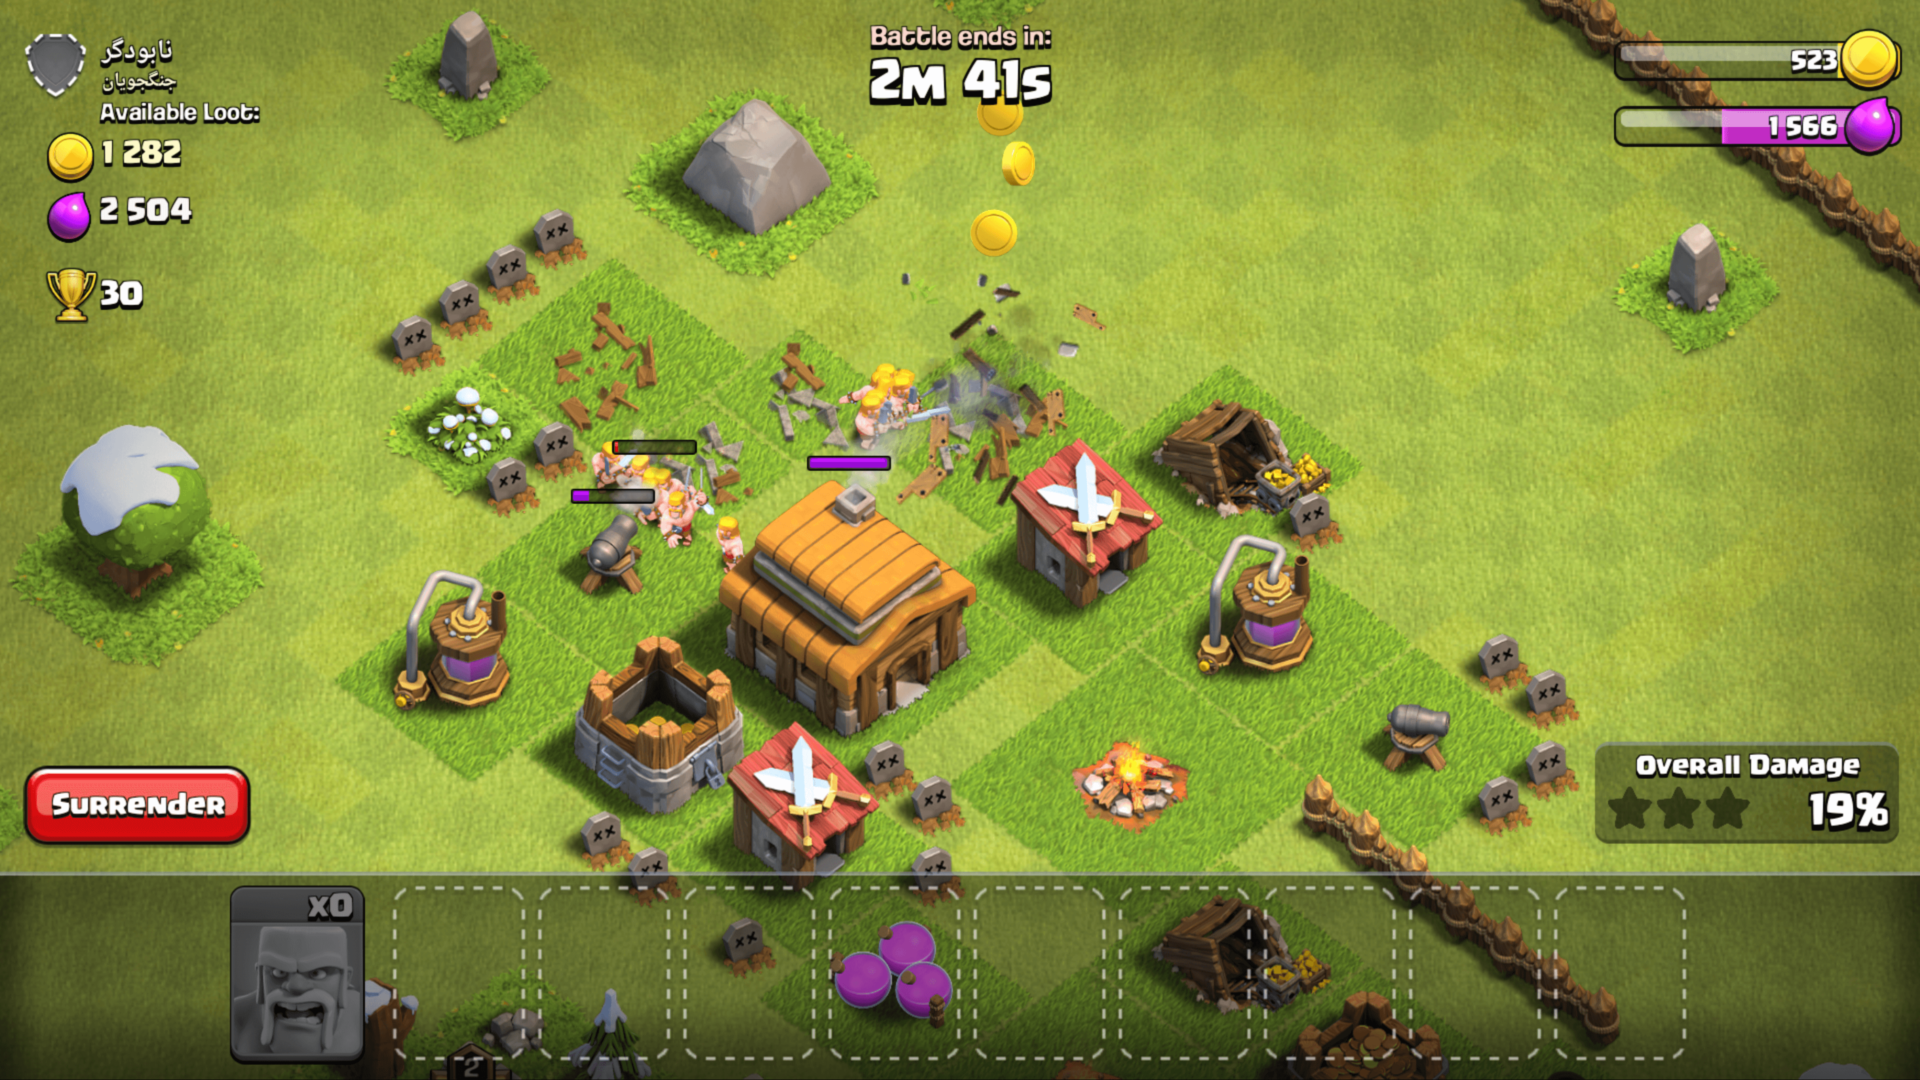 Battle screenshot of Clash of Clans video game interface.